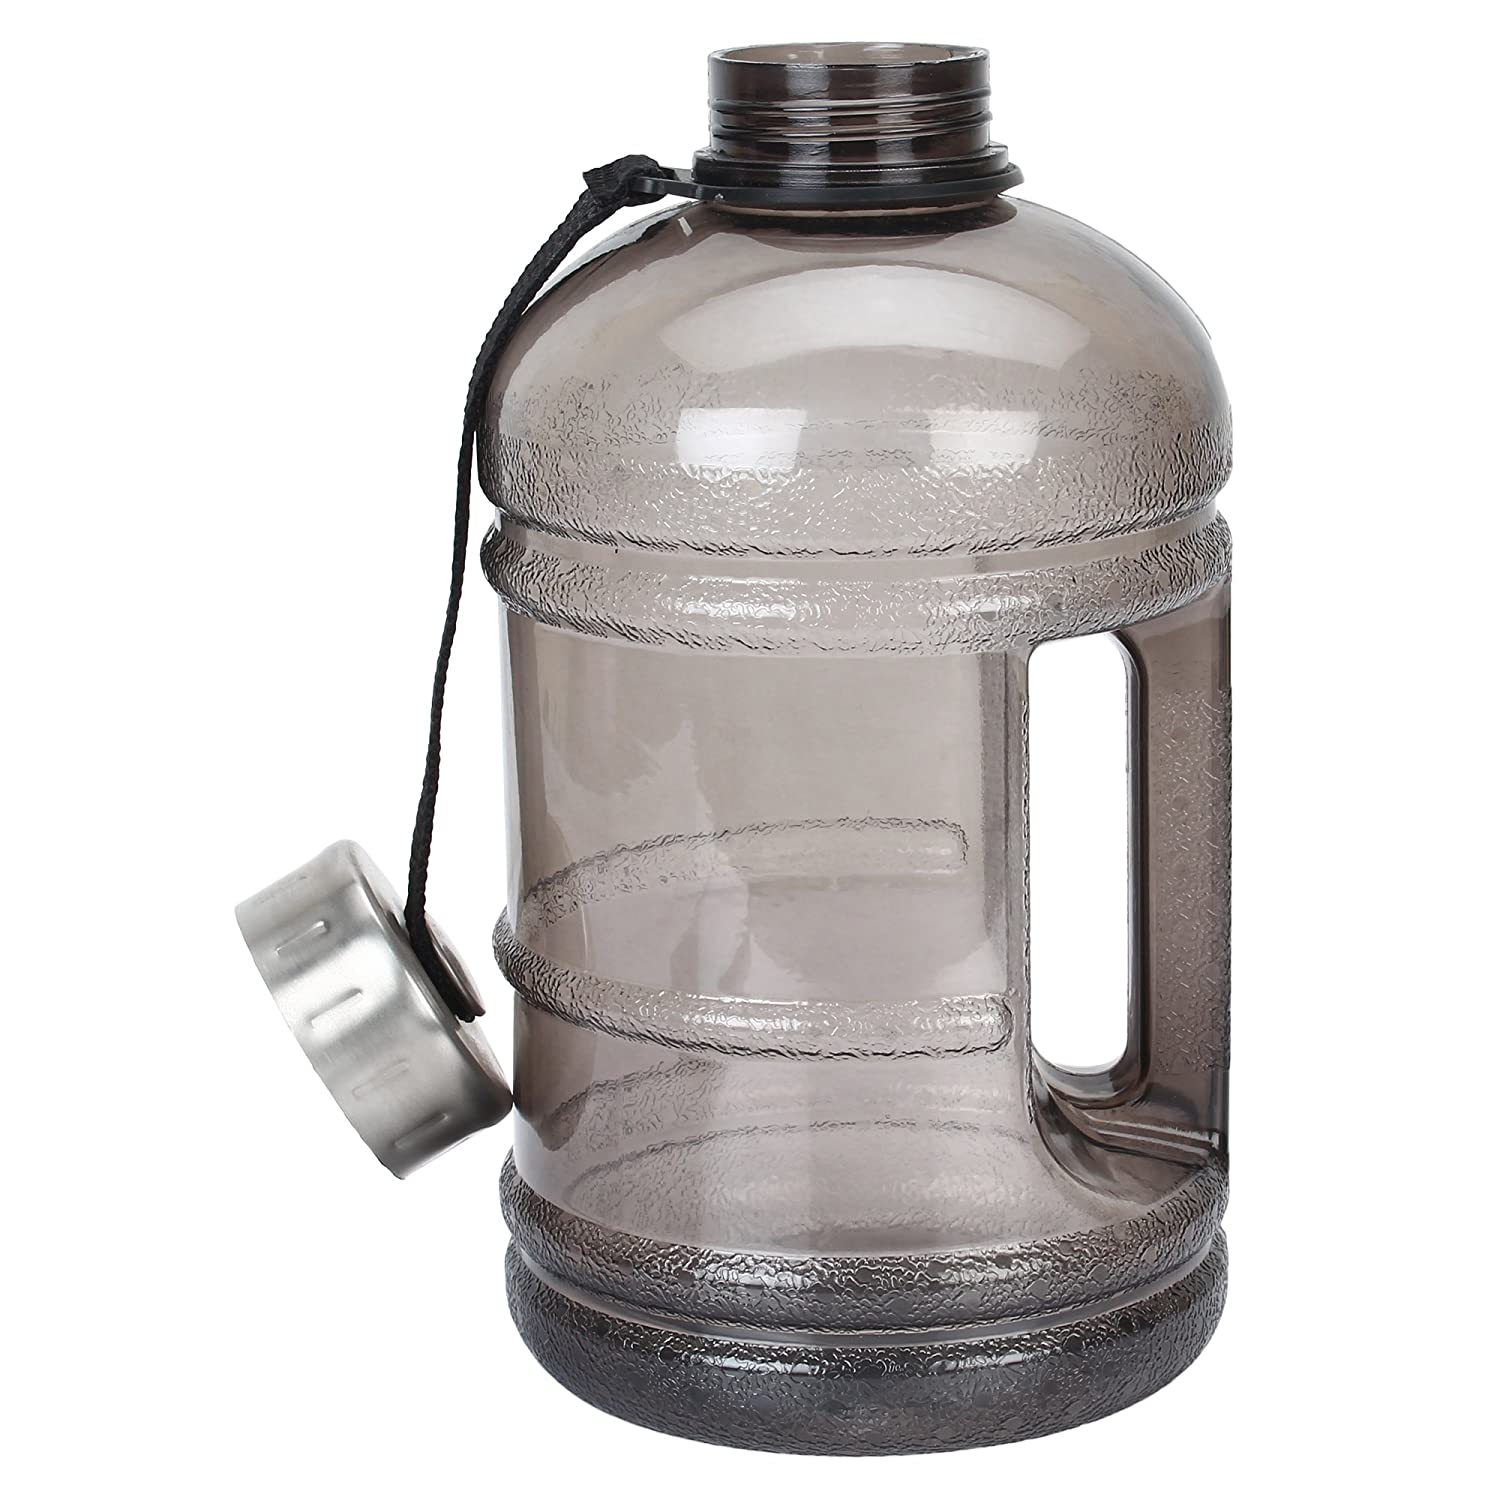 iShake 2.2 Litre Gallon Water Bottle, PETG Eco-Friendly Sports Fitness Exercise Water Jug for Gym, Yoga, Running, Outdoors, Cycling, and Camping.